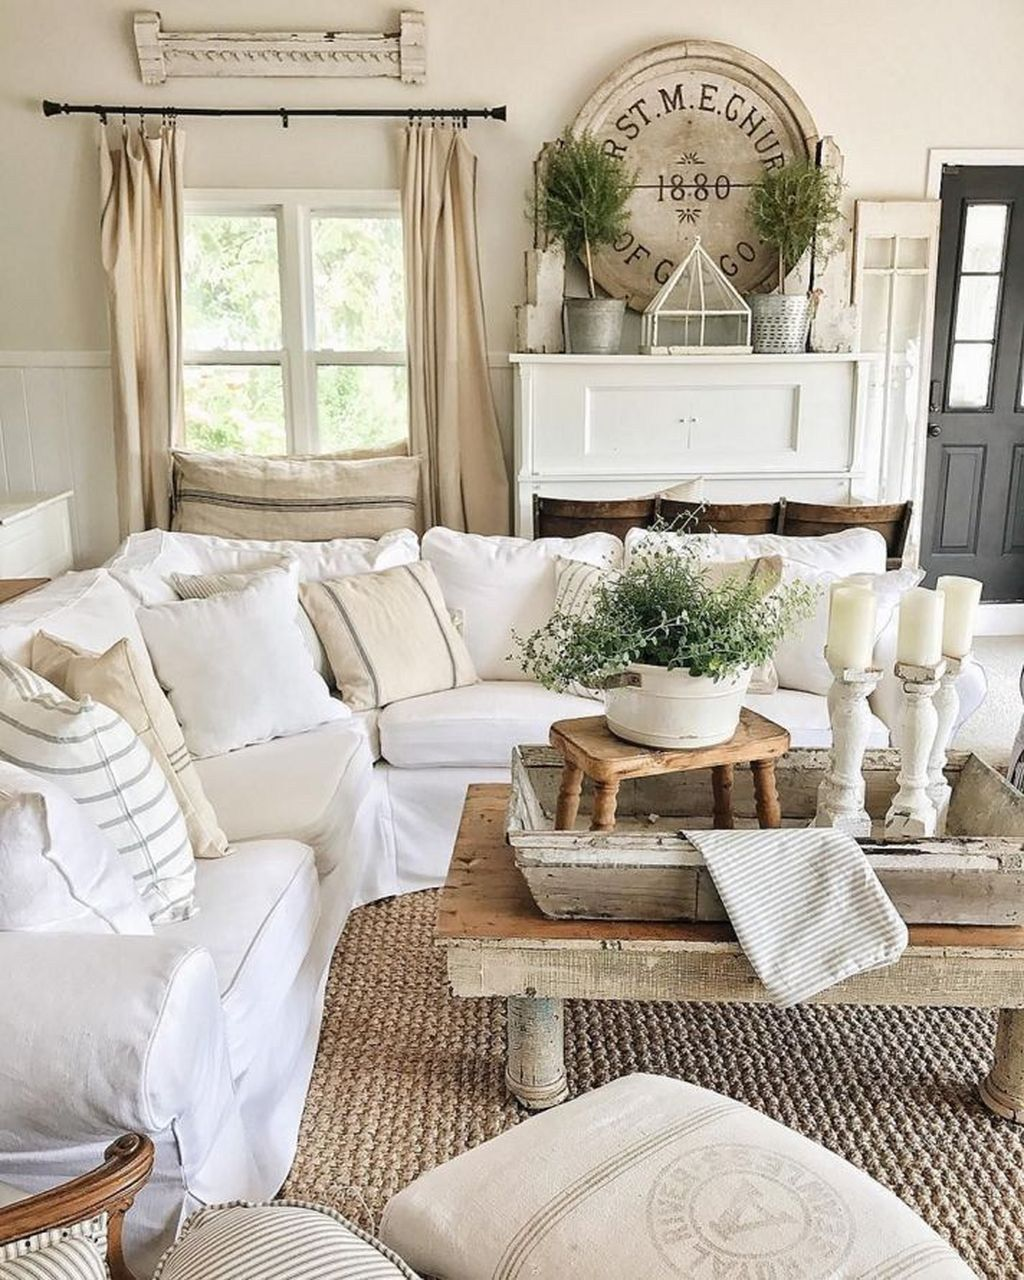 10 Modern Farmhouse Living Room Ideas: 46 Cozy Farmhouse Living Room Decor Ideas That Make You